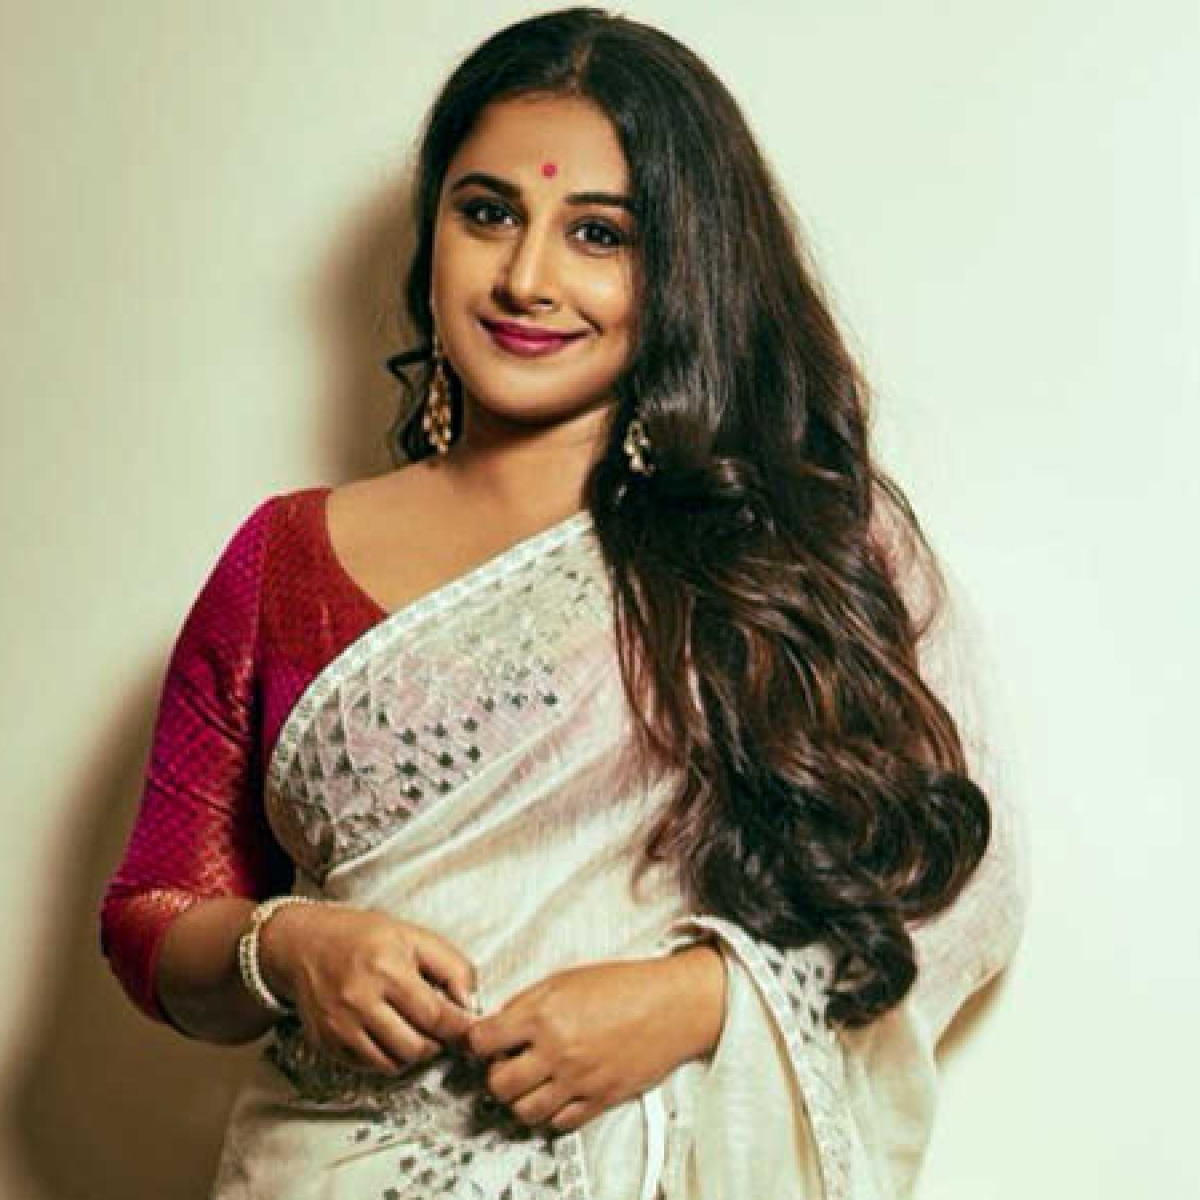 'WTF': Netizens in shock as Vidya Balan thanks coronavirus for curbing pollution